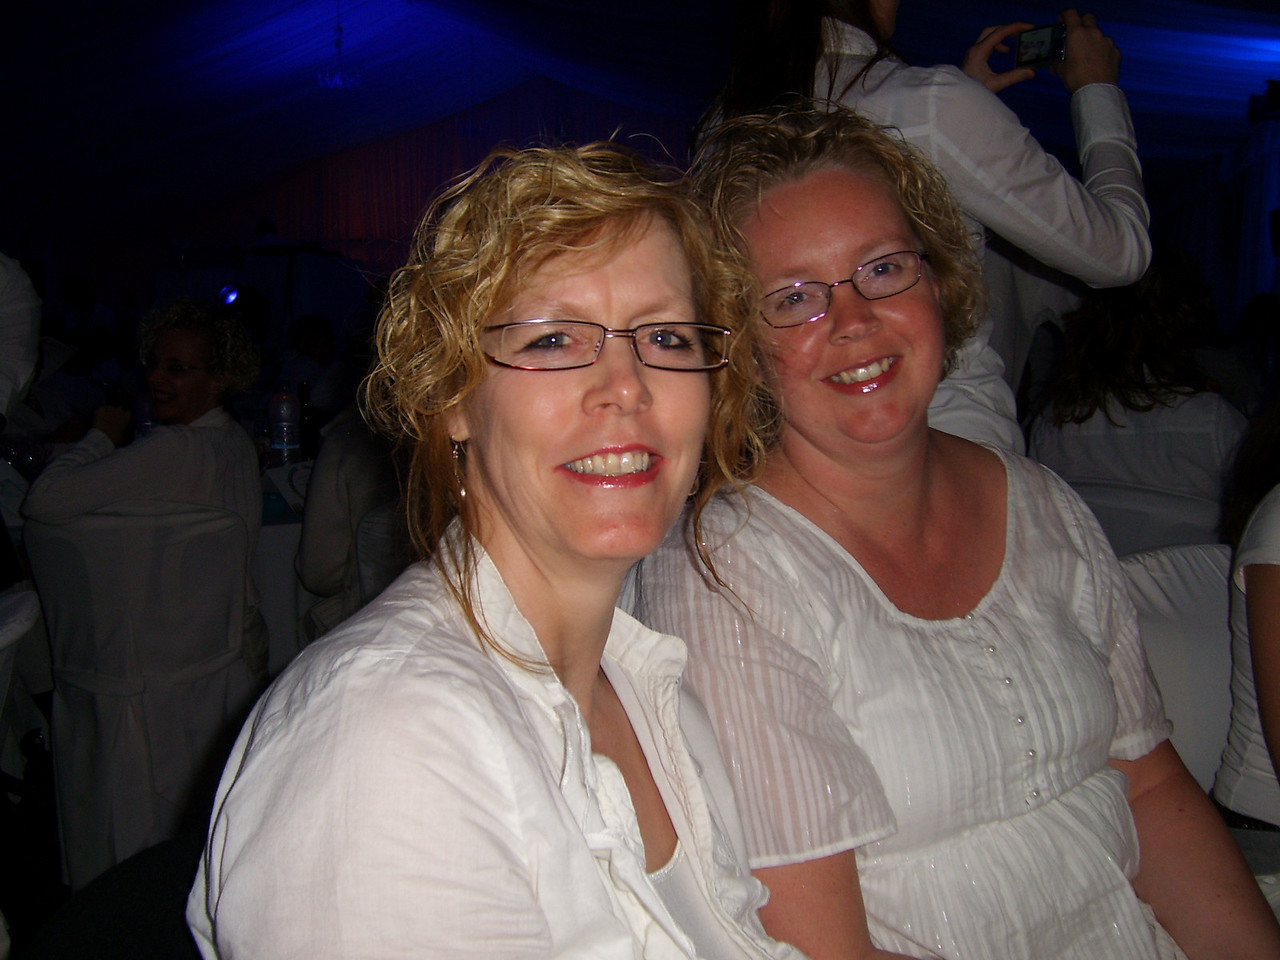 The final night, BIG party! All dressed in white. AWESOME!<br /> Here's Ellie and me.